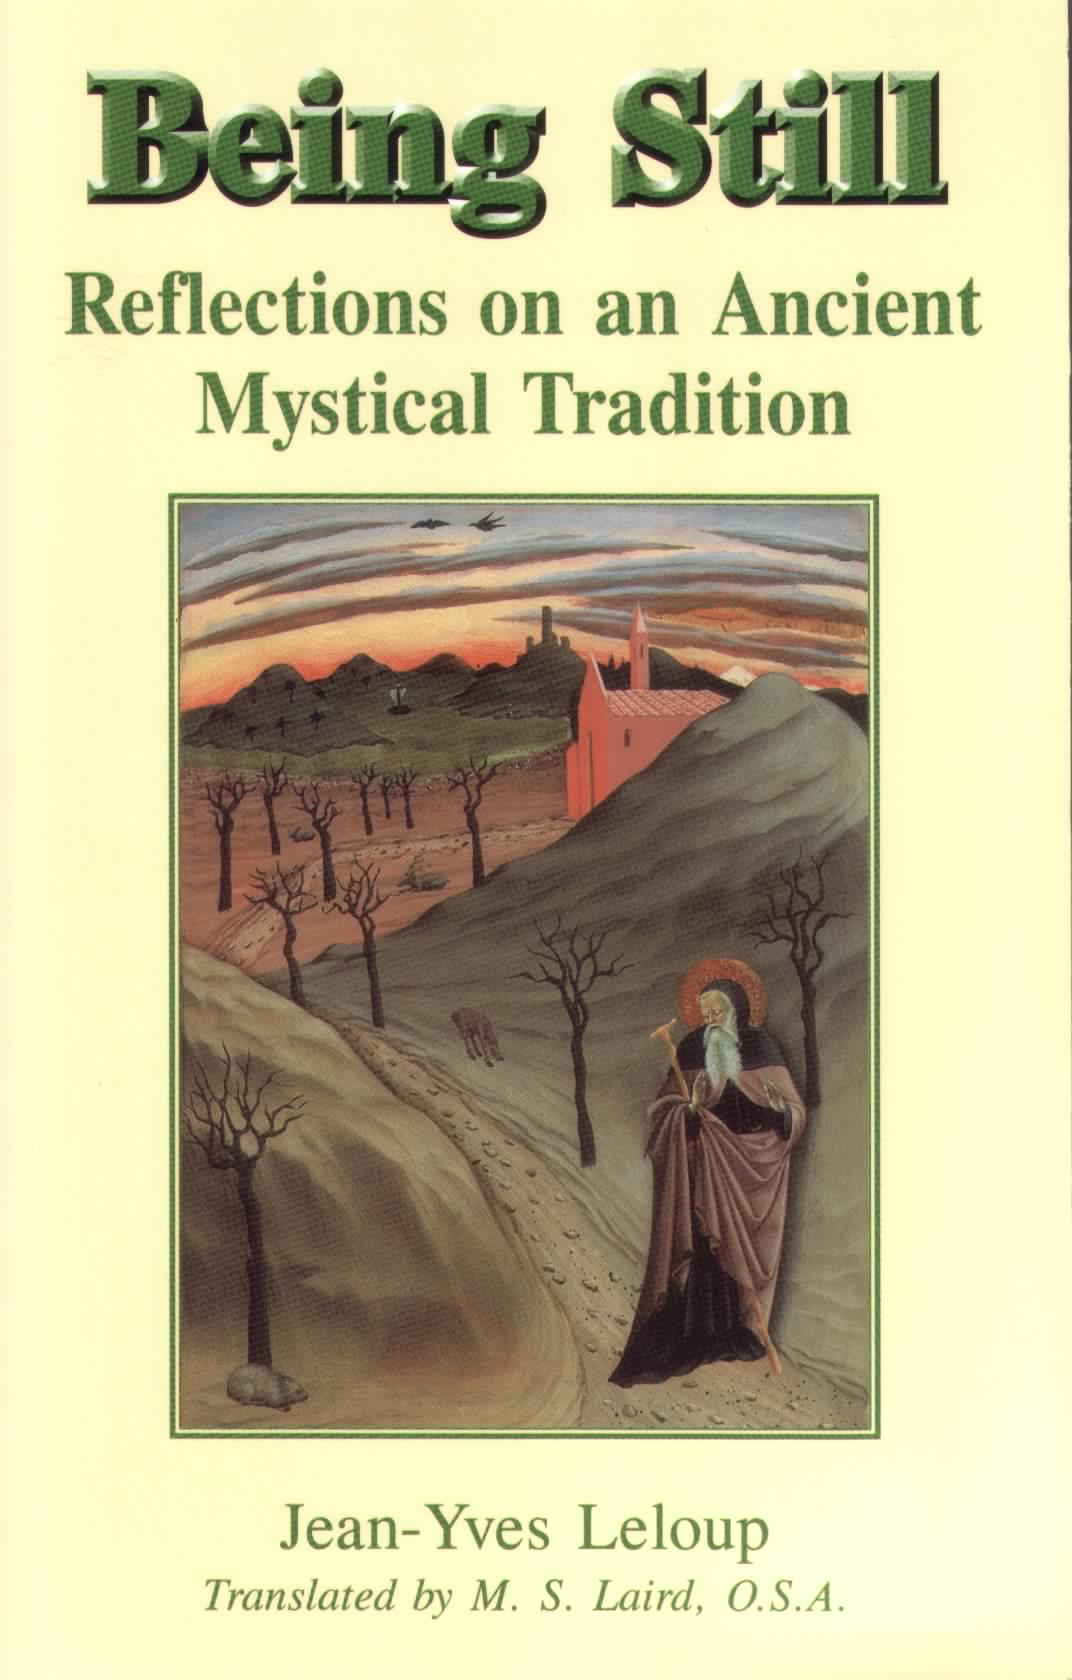 Being Still: Reflections on an Ancient Mystical Tradition / Jean-Yves Leloup